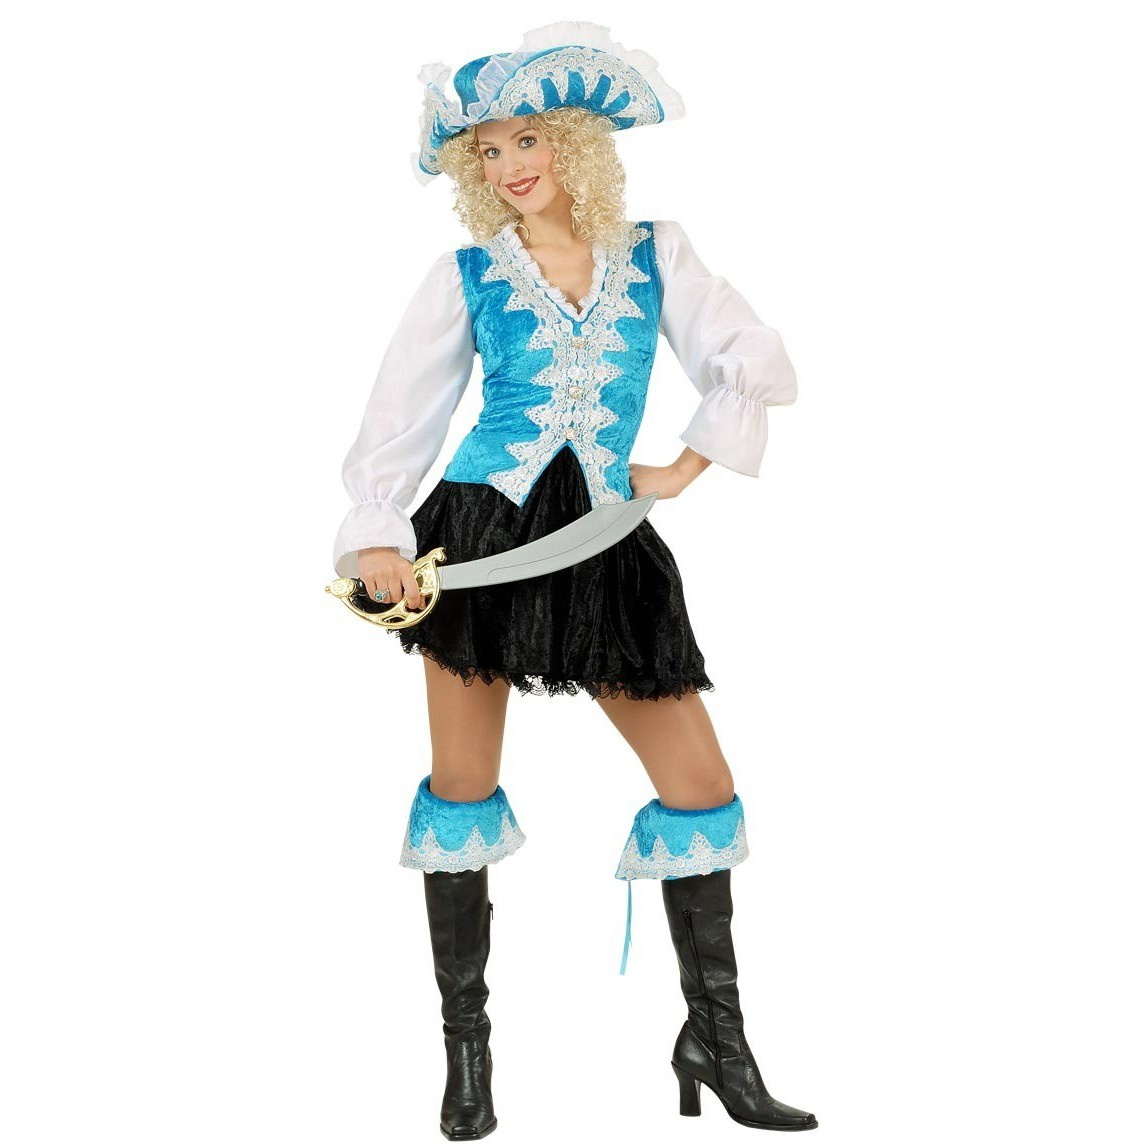 Barock Piraten Lady Kostüm blau